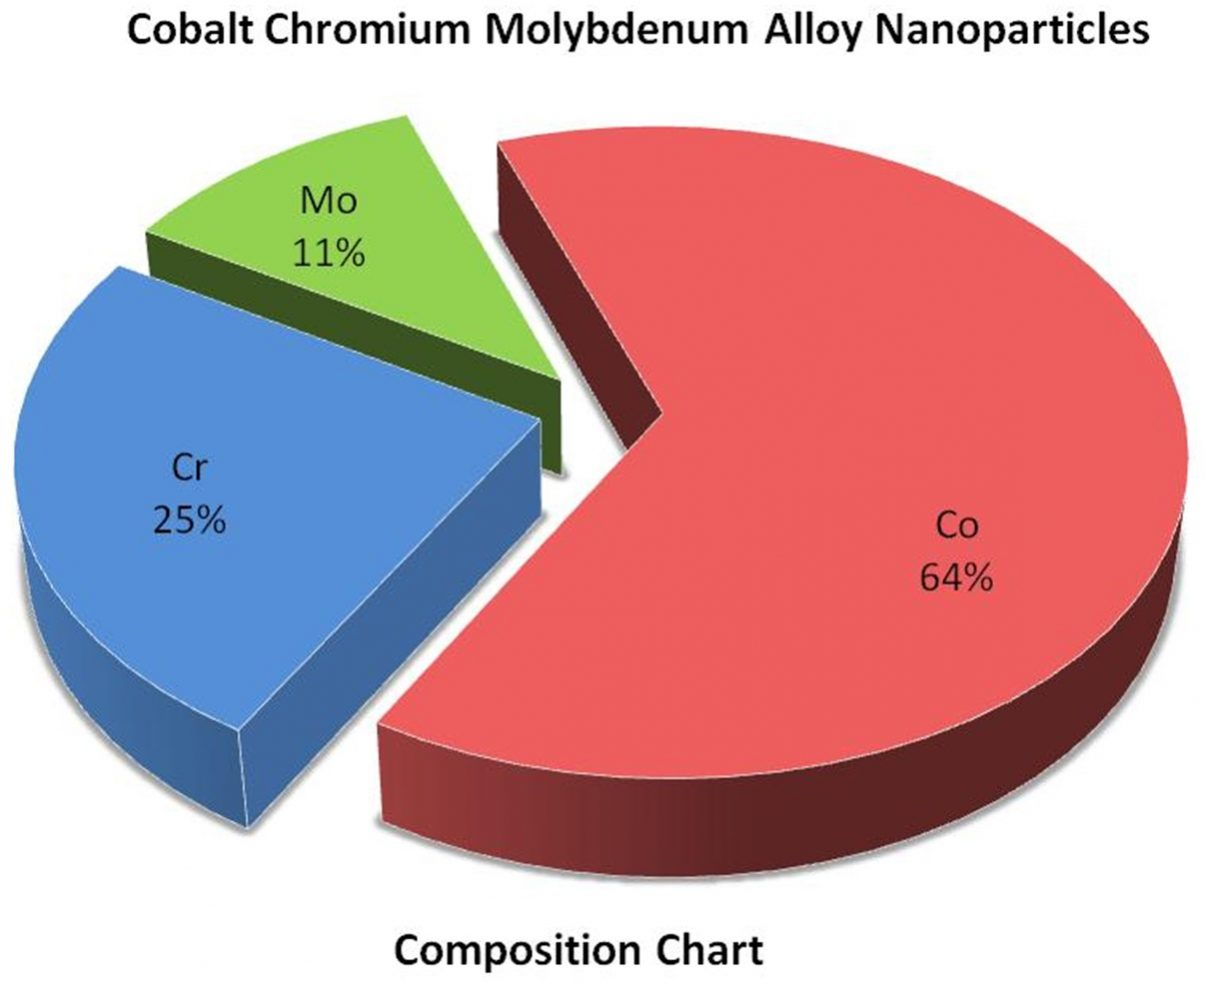 Cobalt Chromium Molybdenum Alloy Nanoparticles